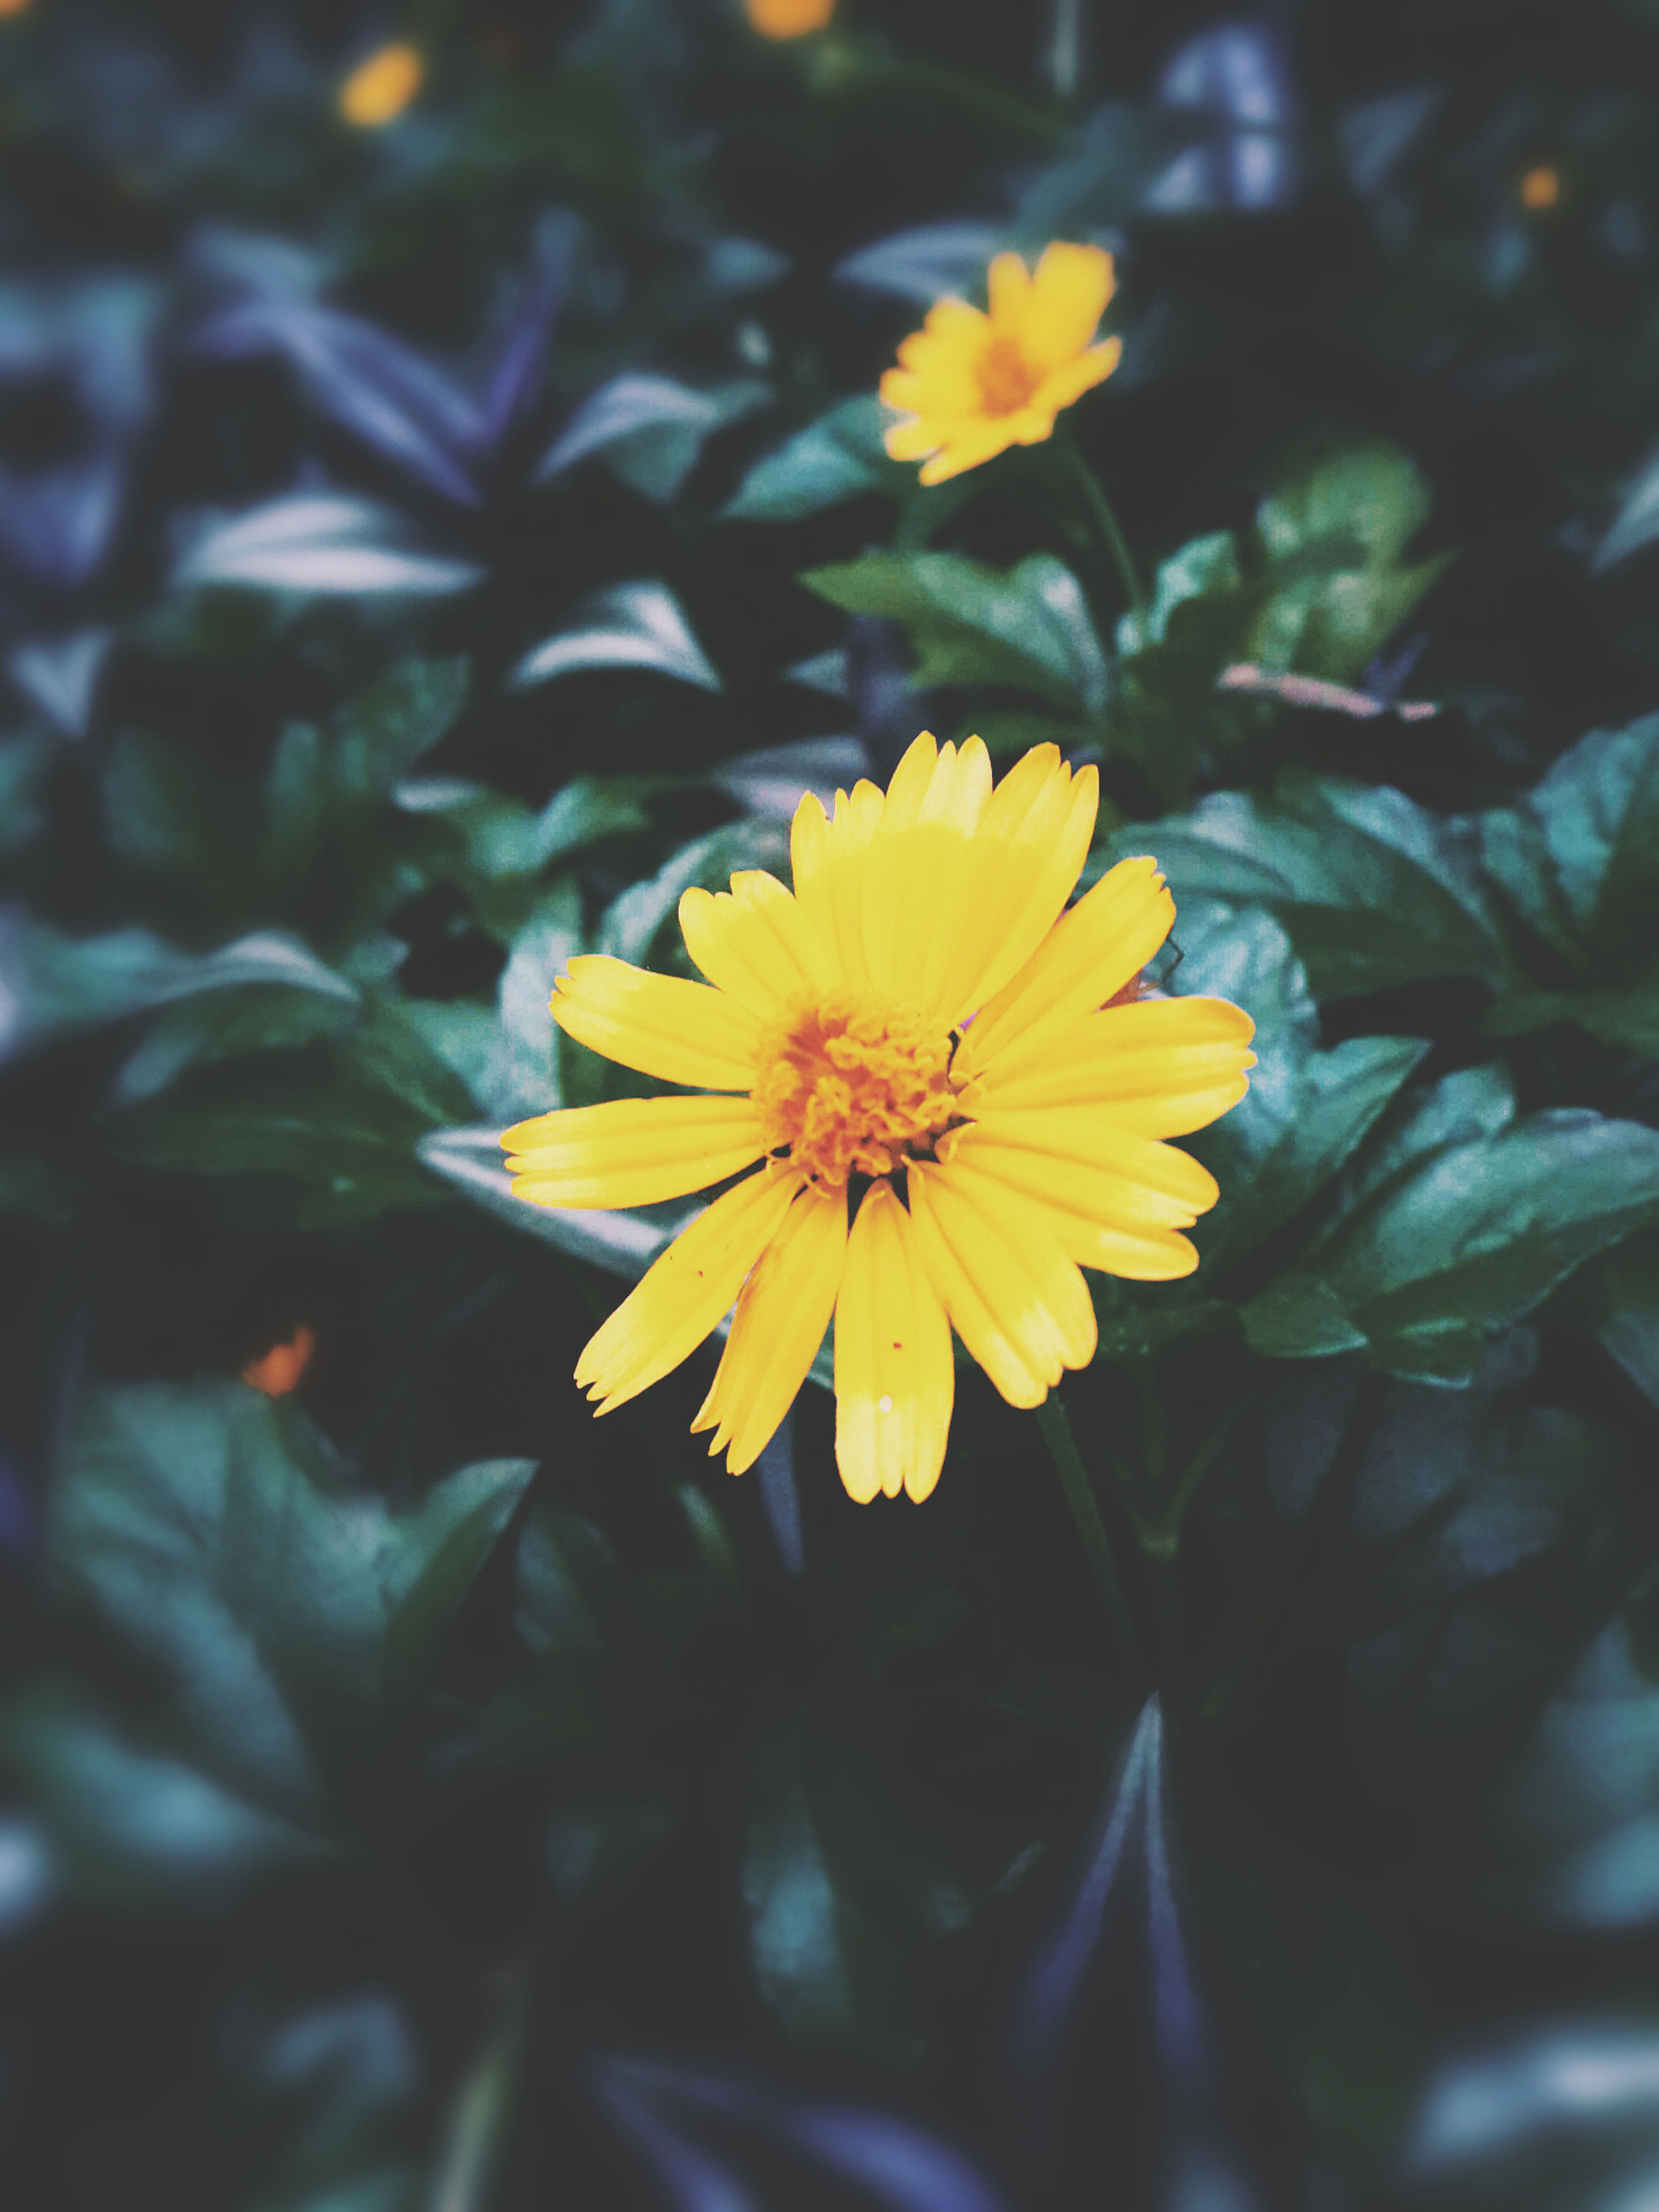 flower, petal, yellow, freshness, flower head, fragility, growth, beauty in nature, pollen, blooming, close-up, focus on foreground, nature, plant, single flower, in bloom, day, outdoors, blossom, no people